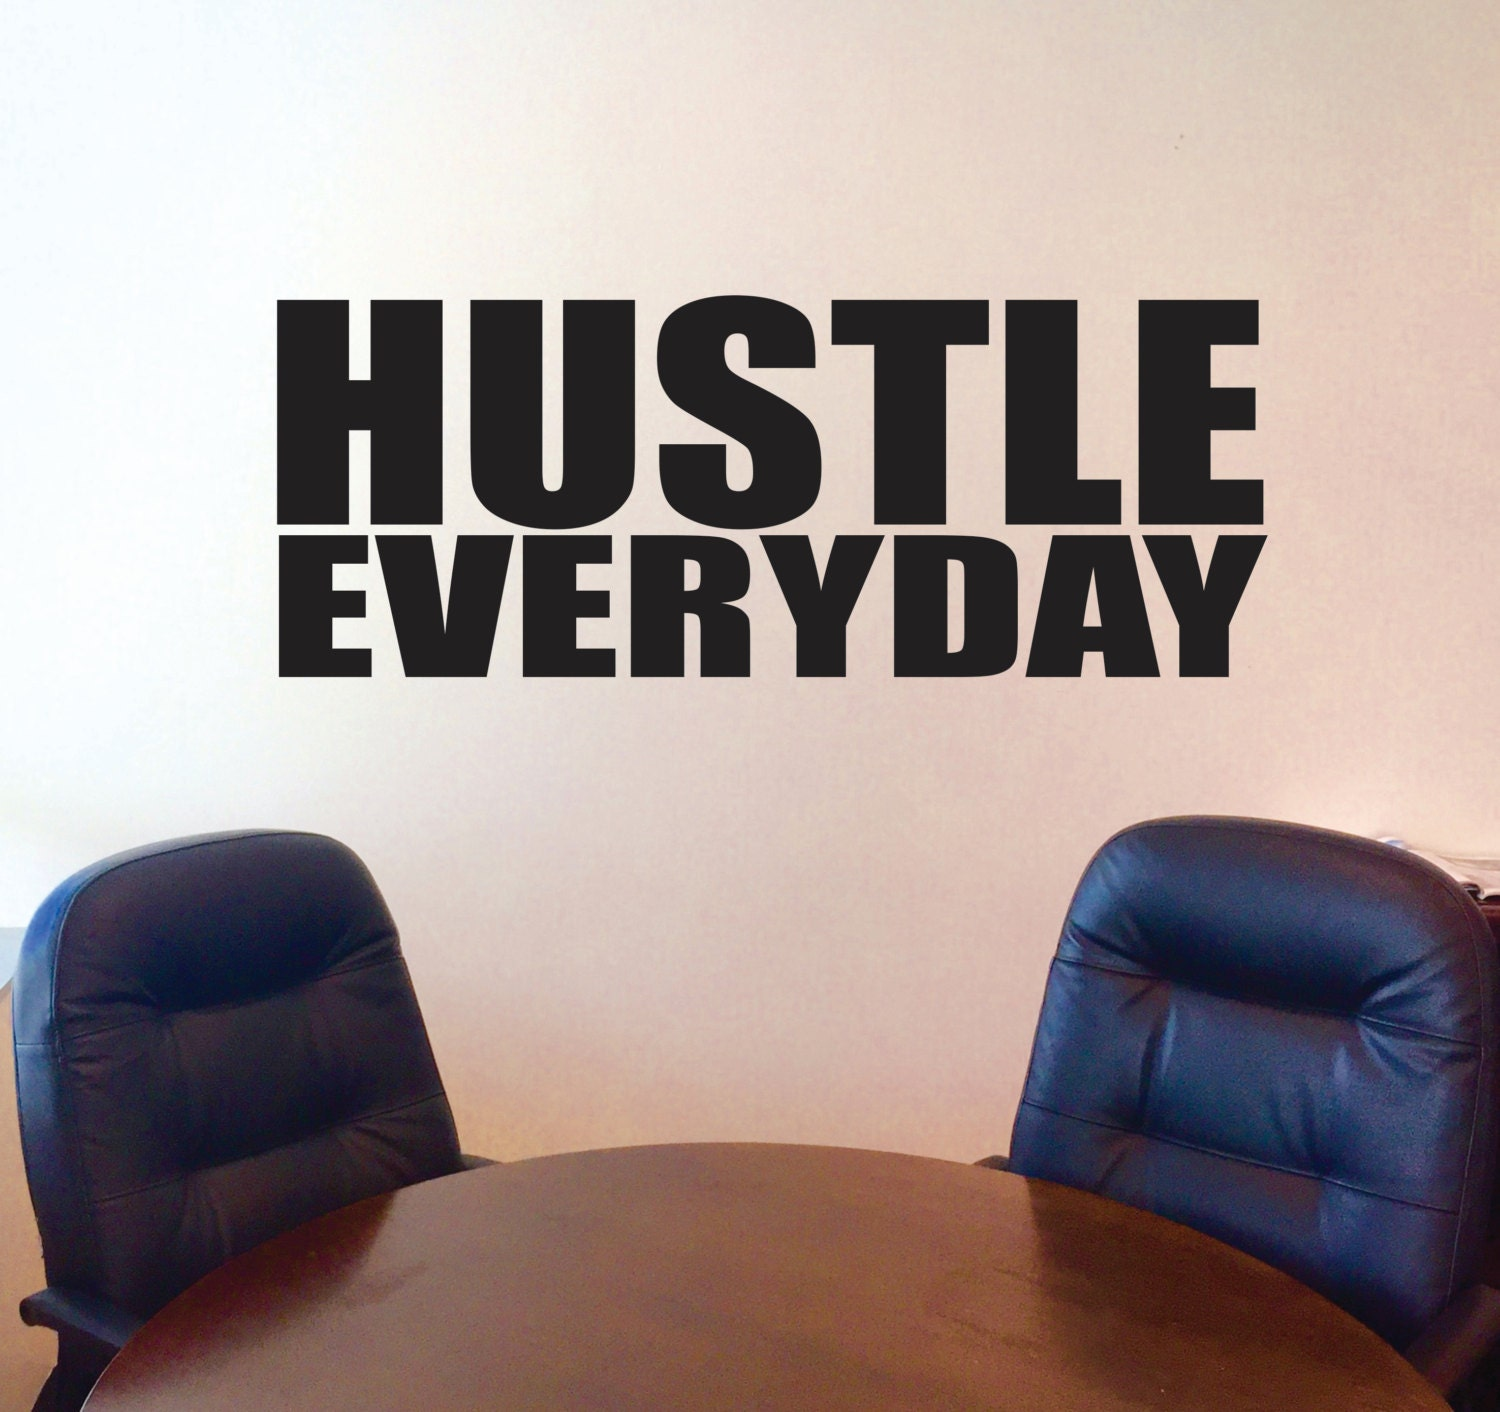 Hustle Everyday Wall Decal, Motivational Wall Decal, Inspirational Wall  Decal, Office Wall Decor